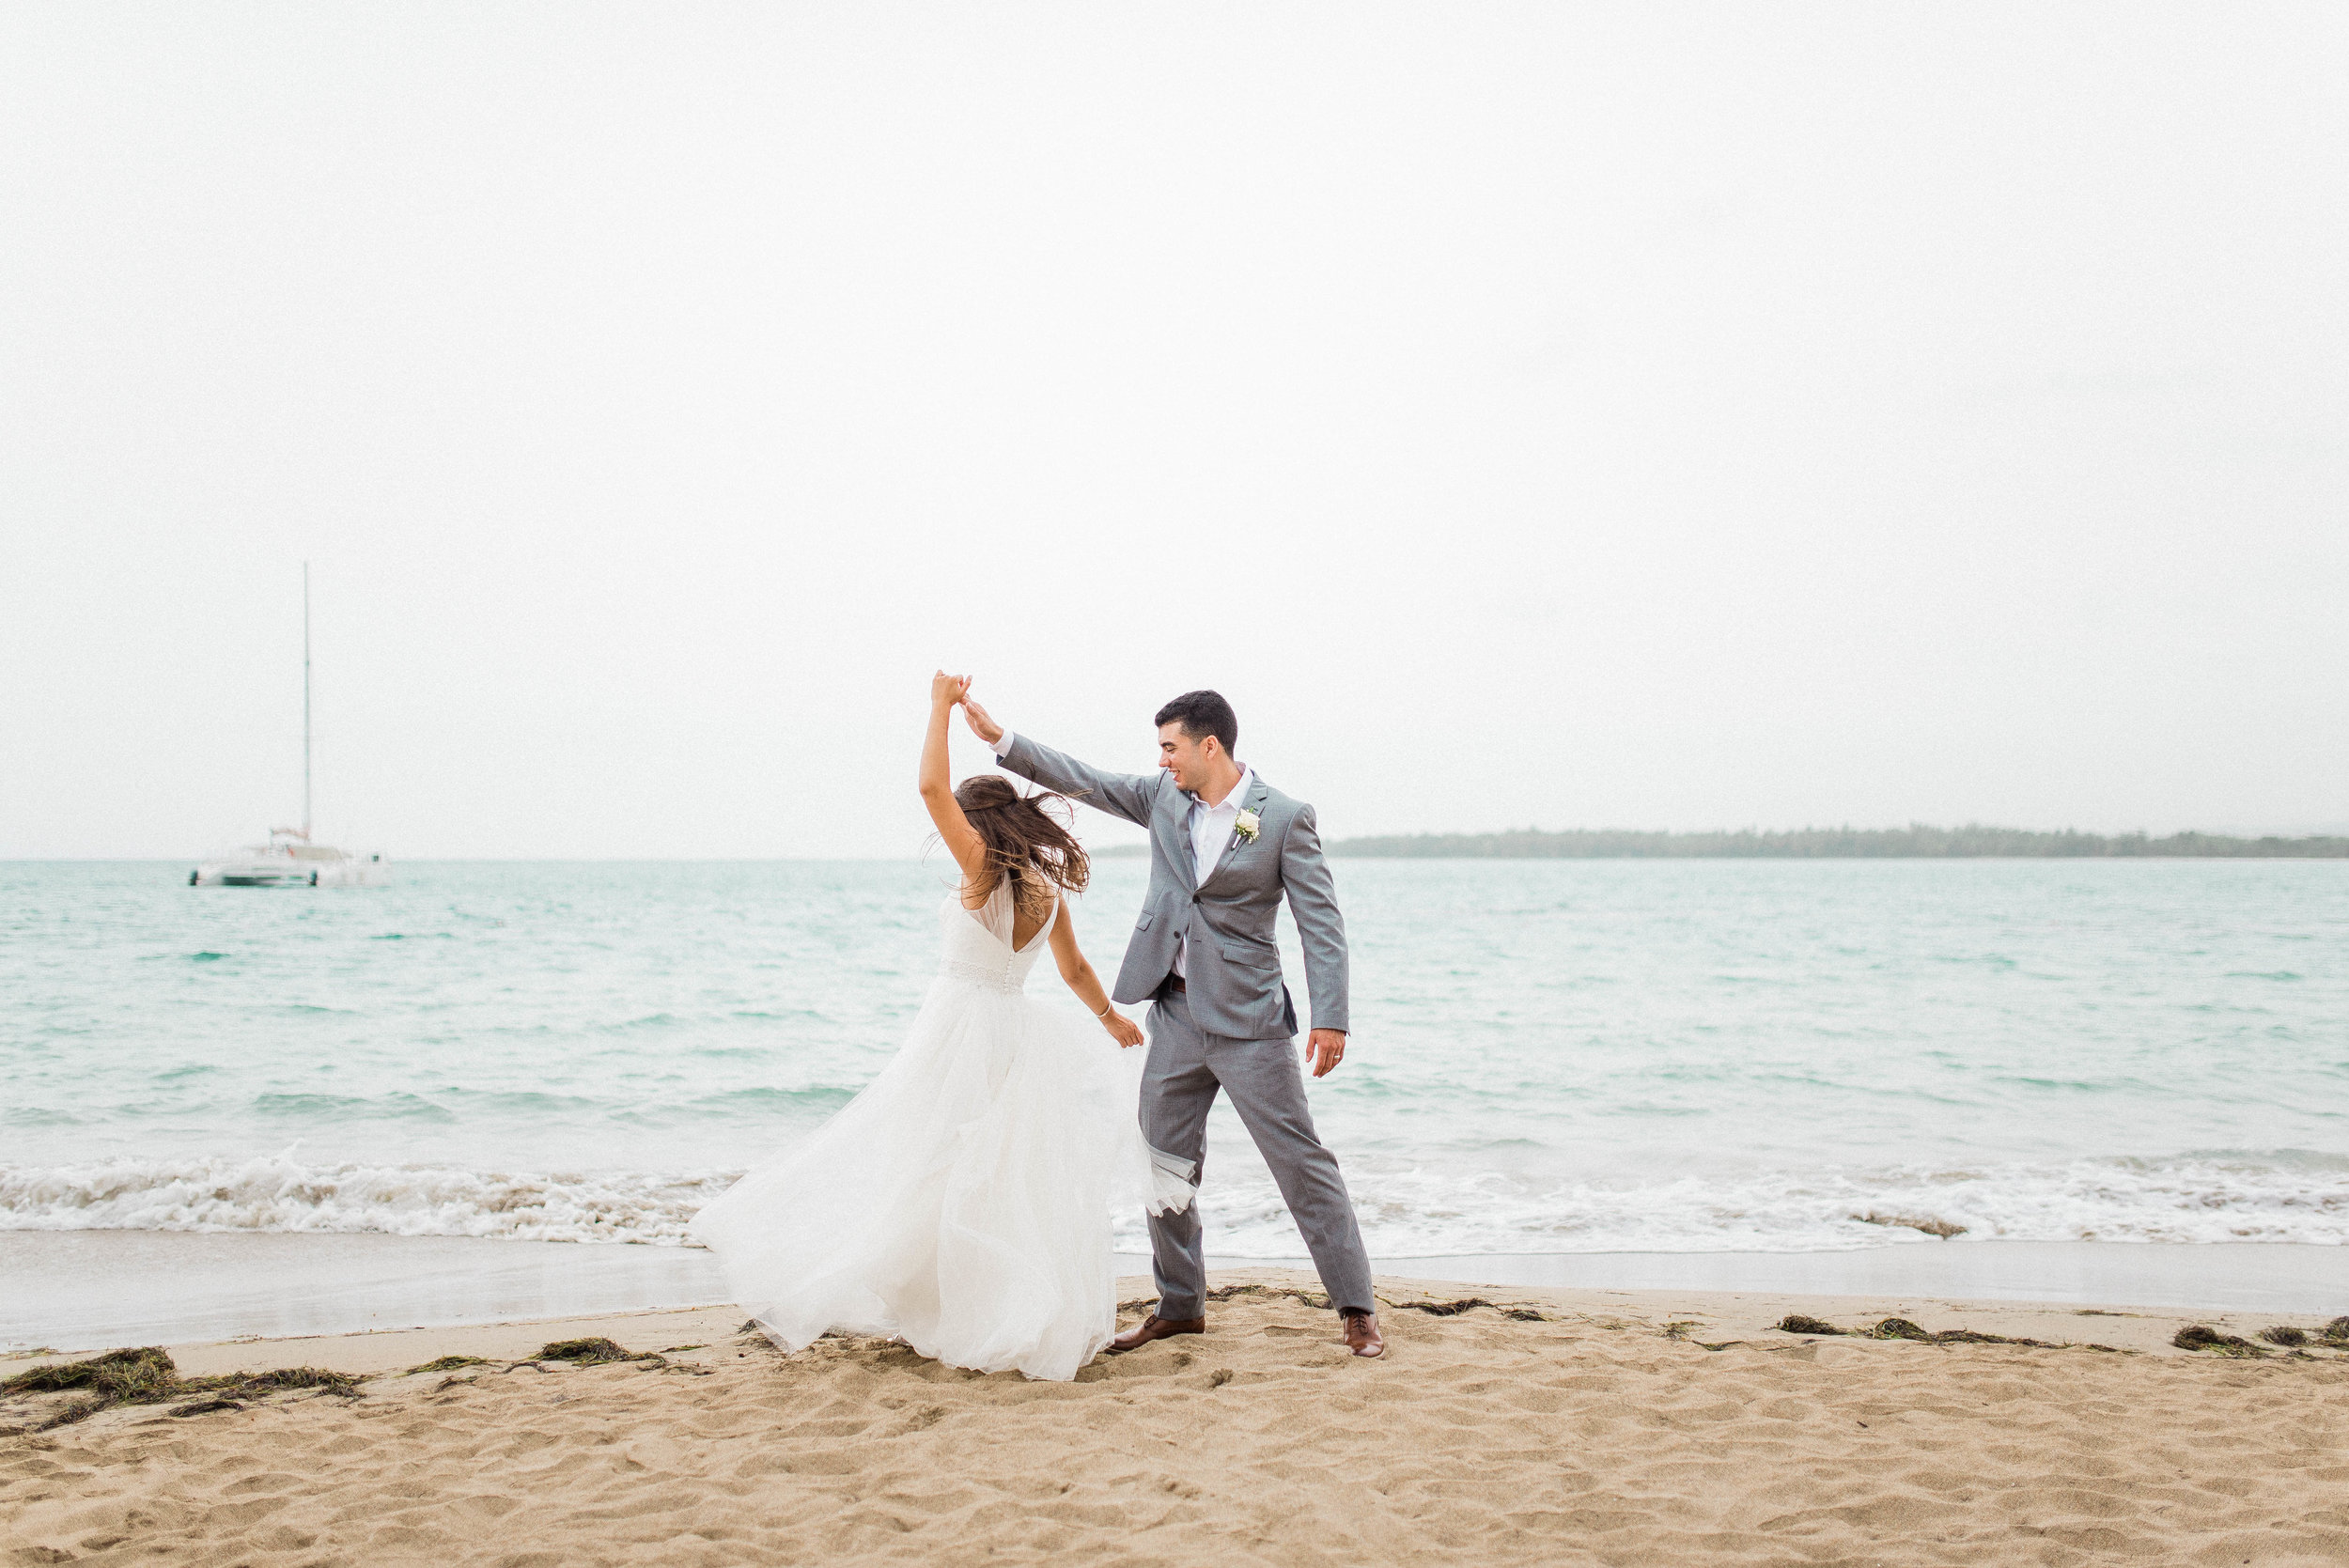 Michaella + Javi | Romantic Bilingual Catholic Mass & Oceanside Fiesta on the Beach in Puerto Plata, Dominican Republic | Indianapolis Elopement & International Destination Wedding Photographers